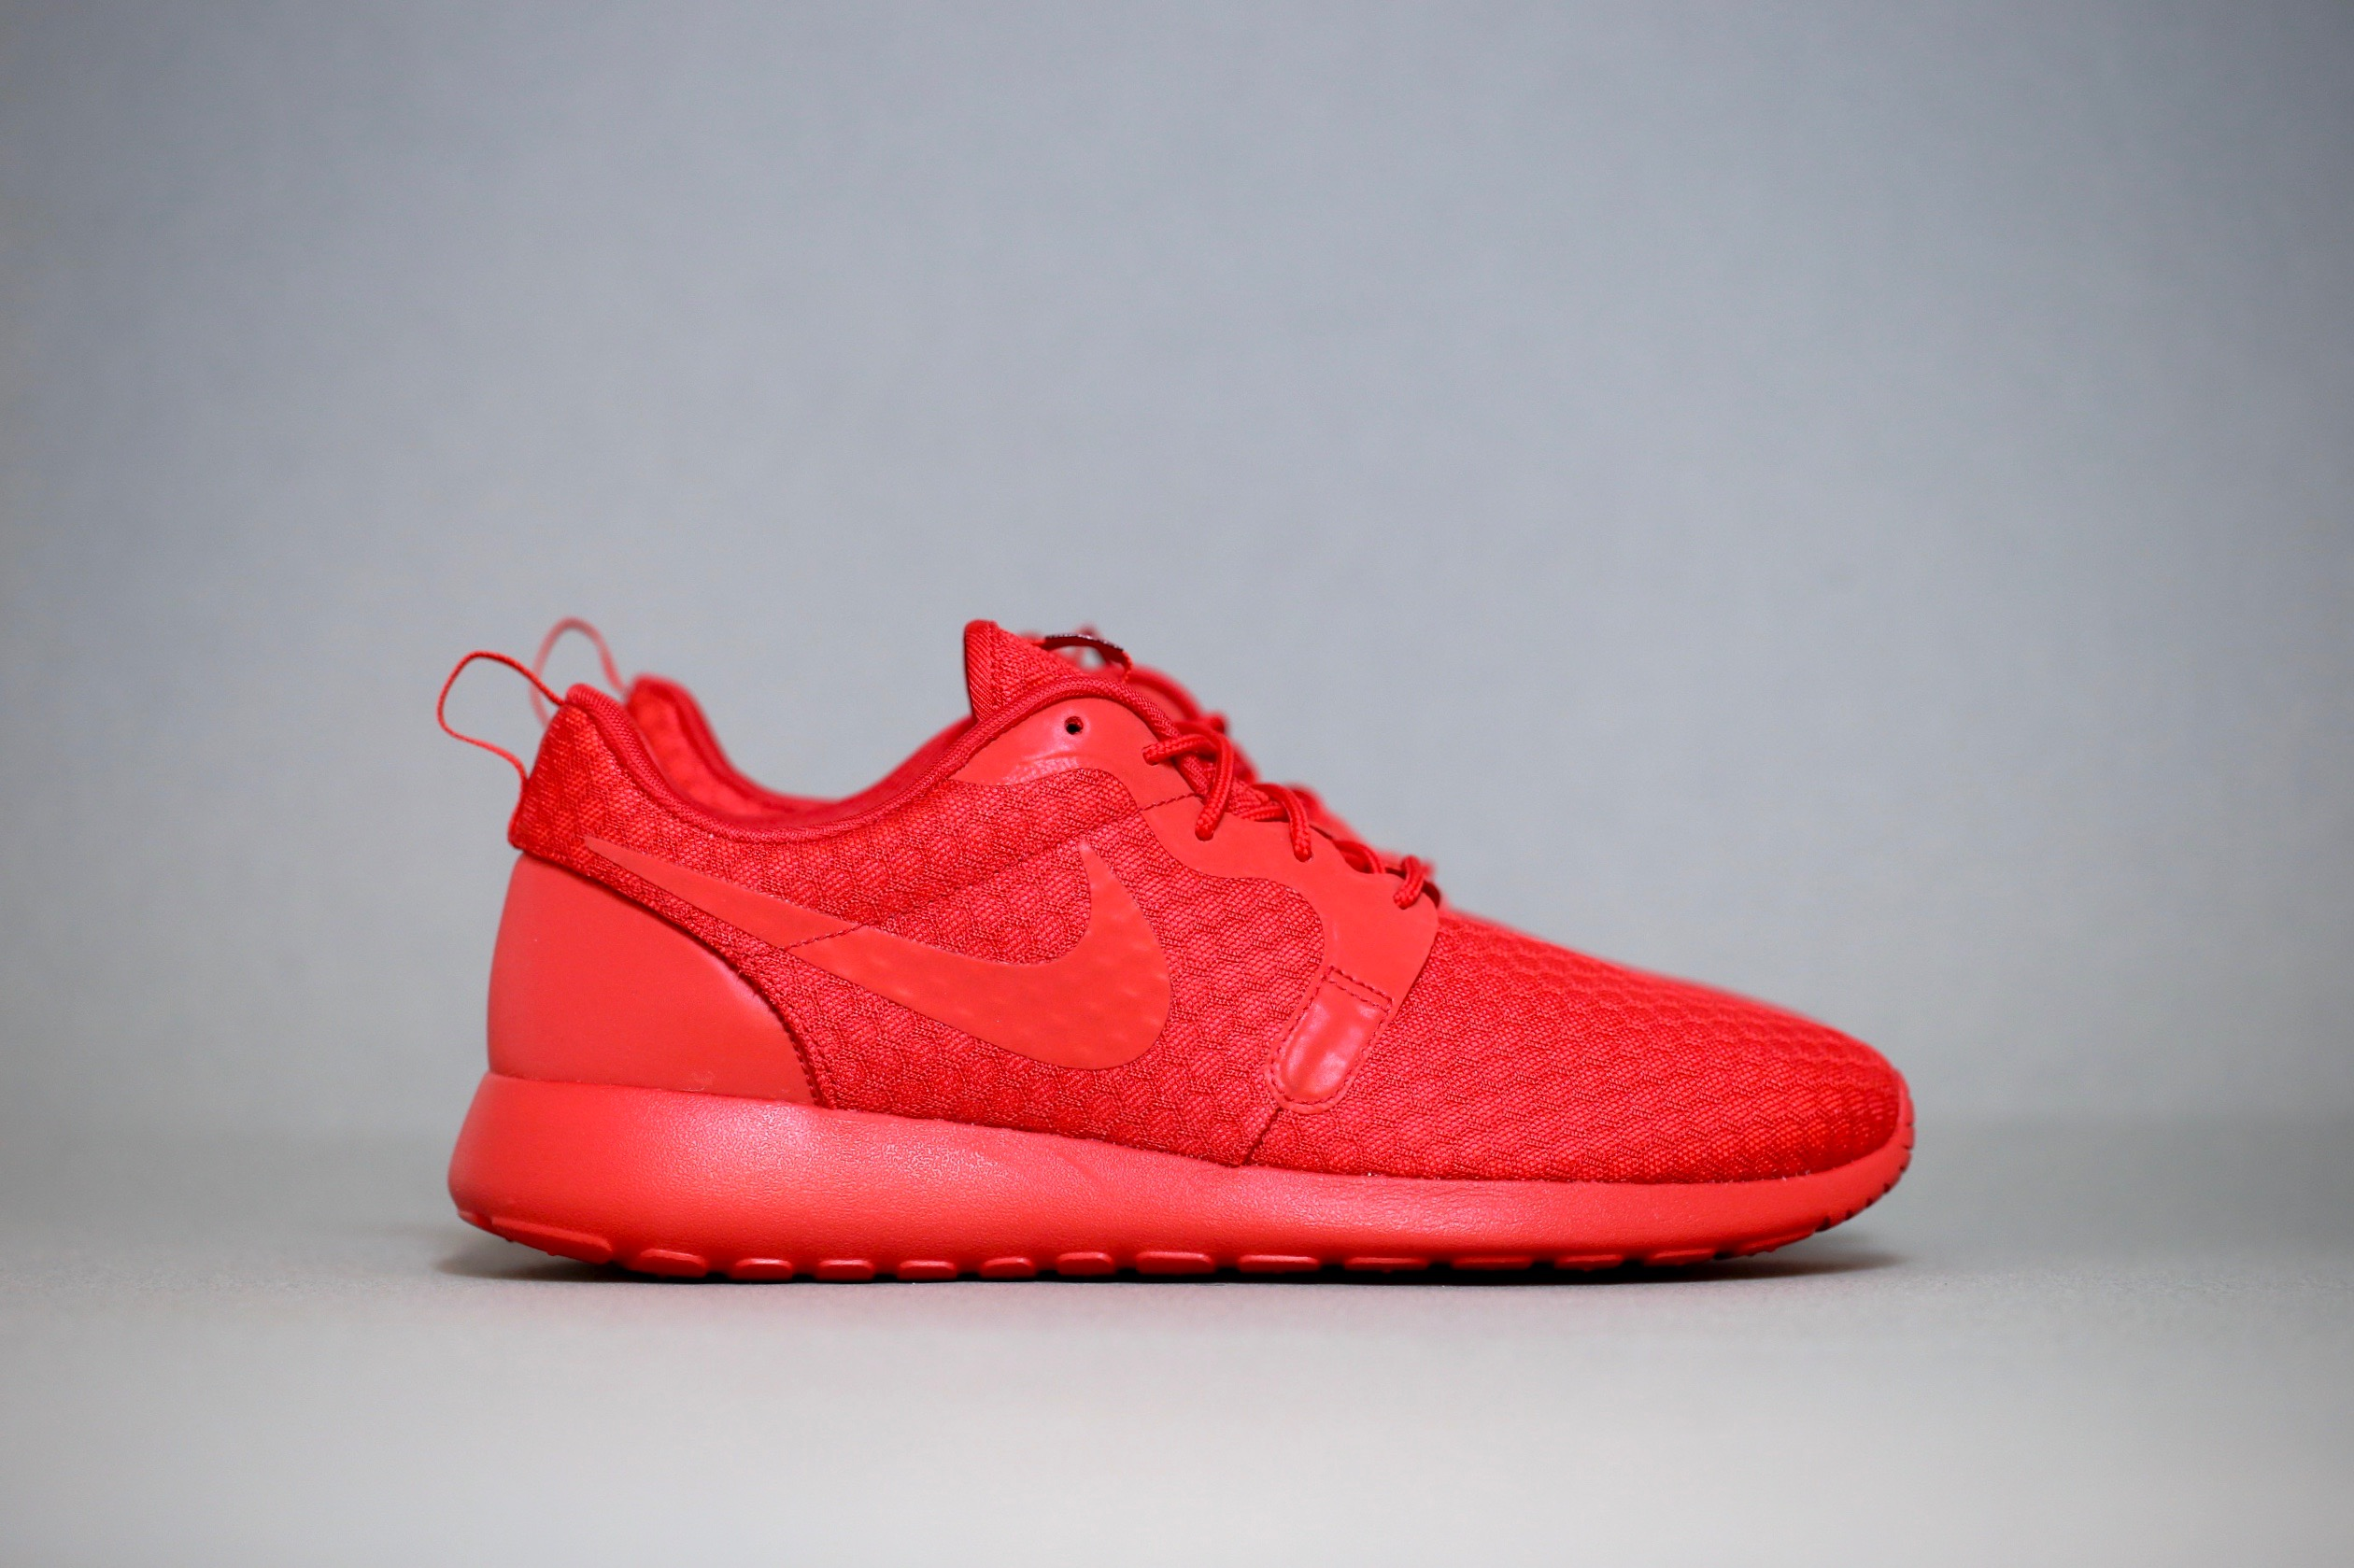 561db241c3bf3 Nike Roshe One Hyperfuse – University Red   University Red   Black ...